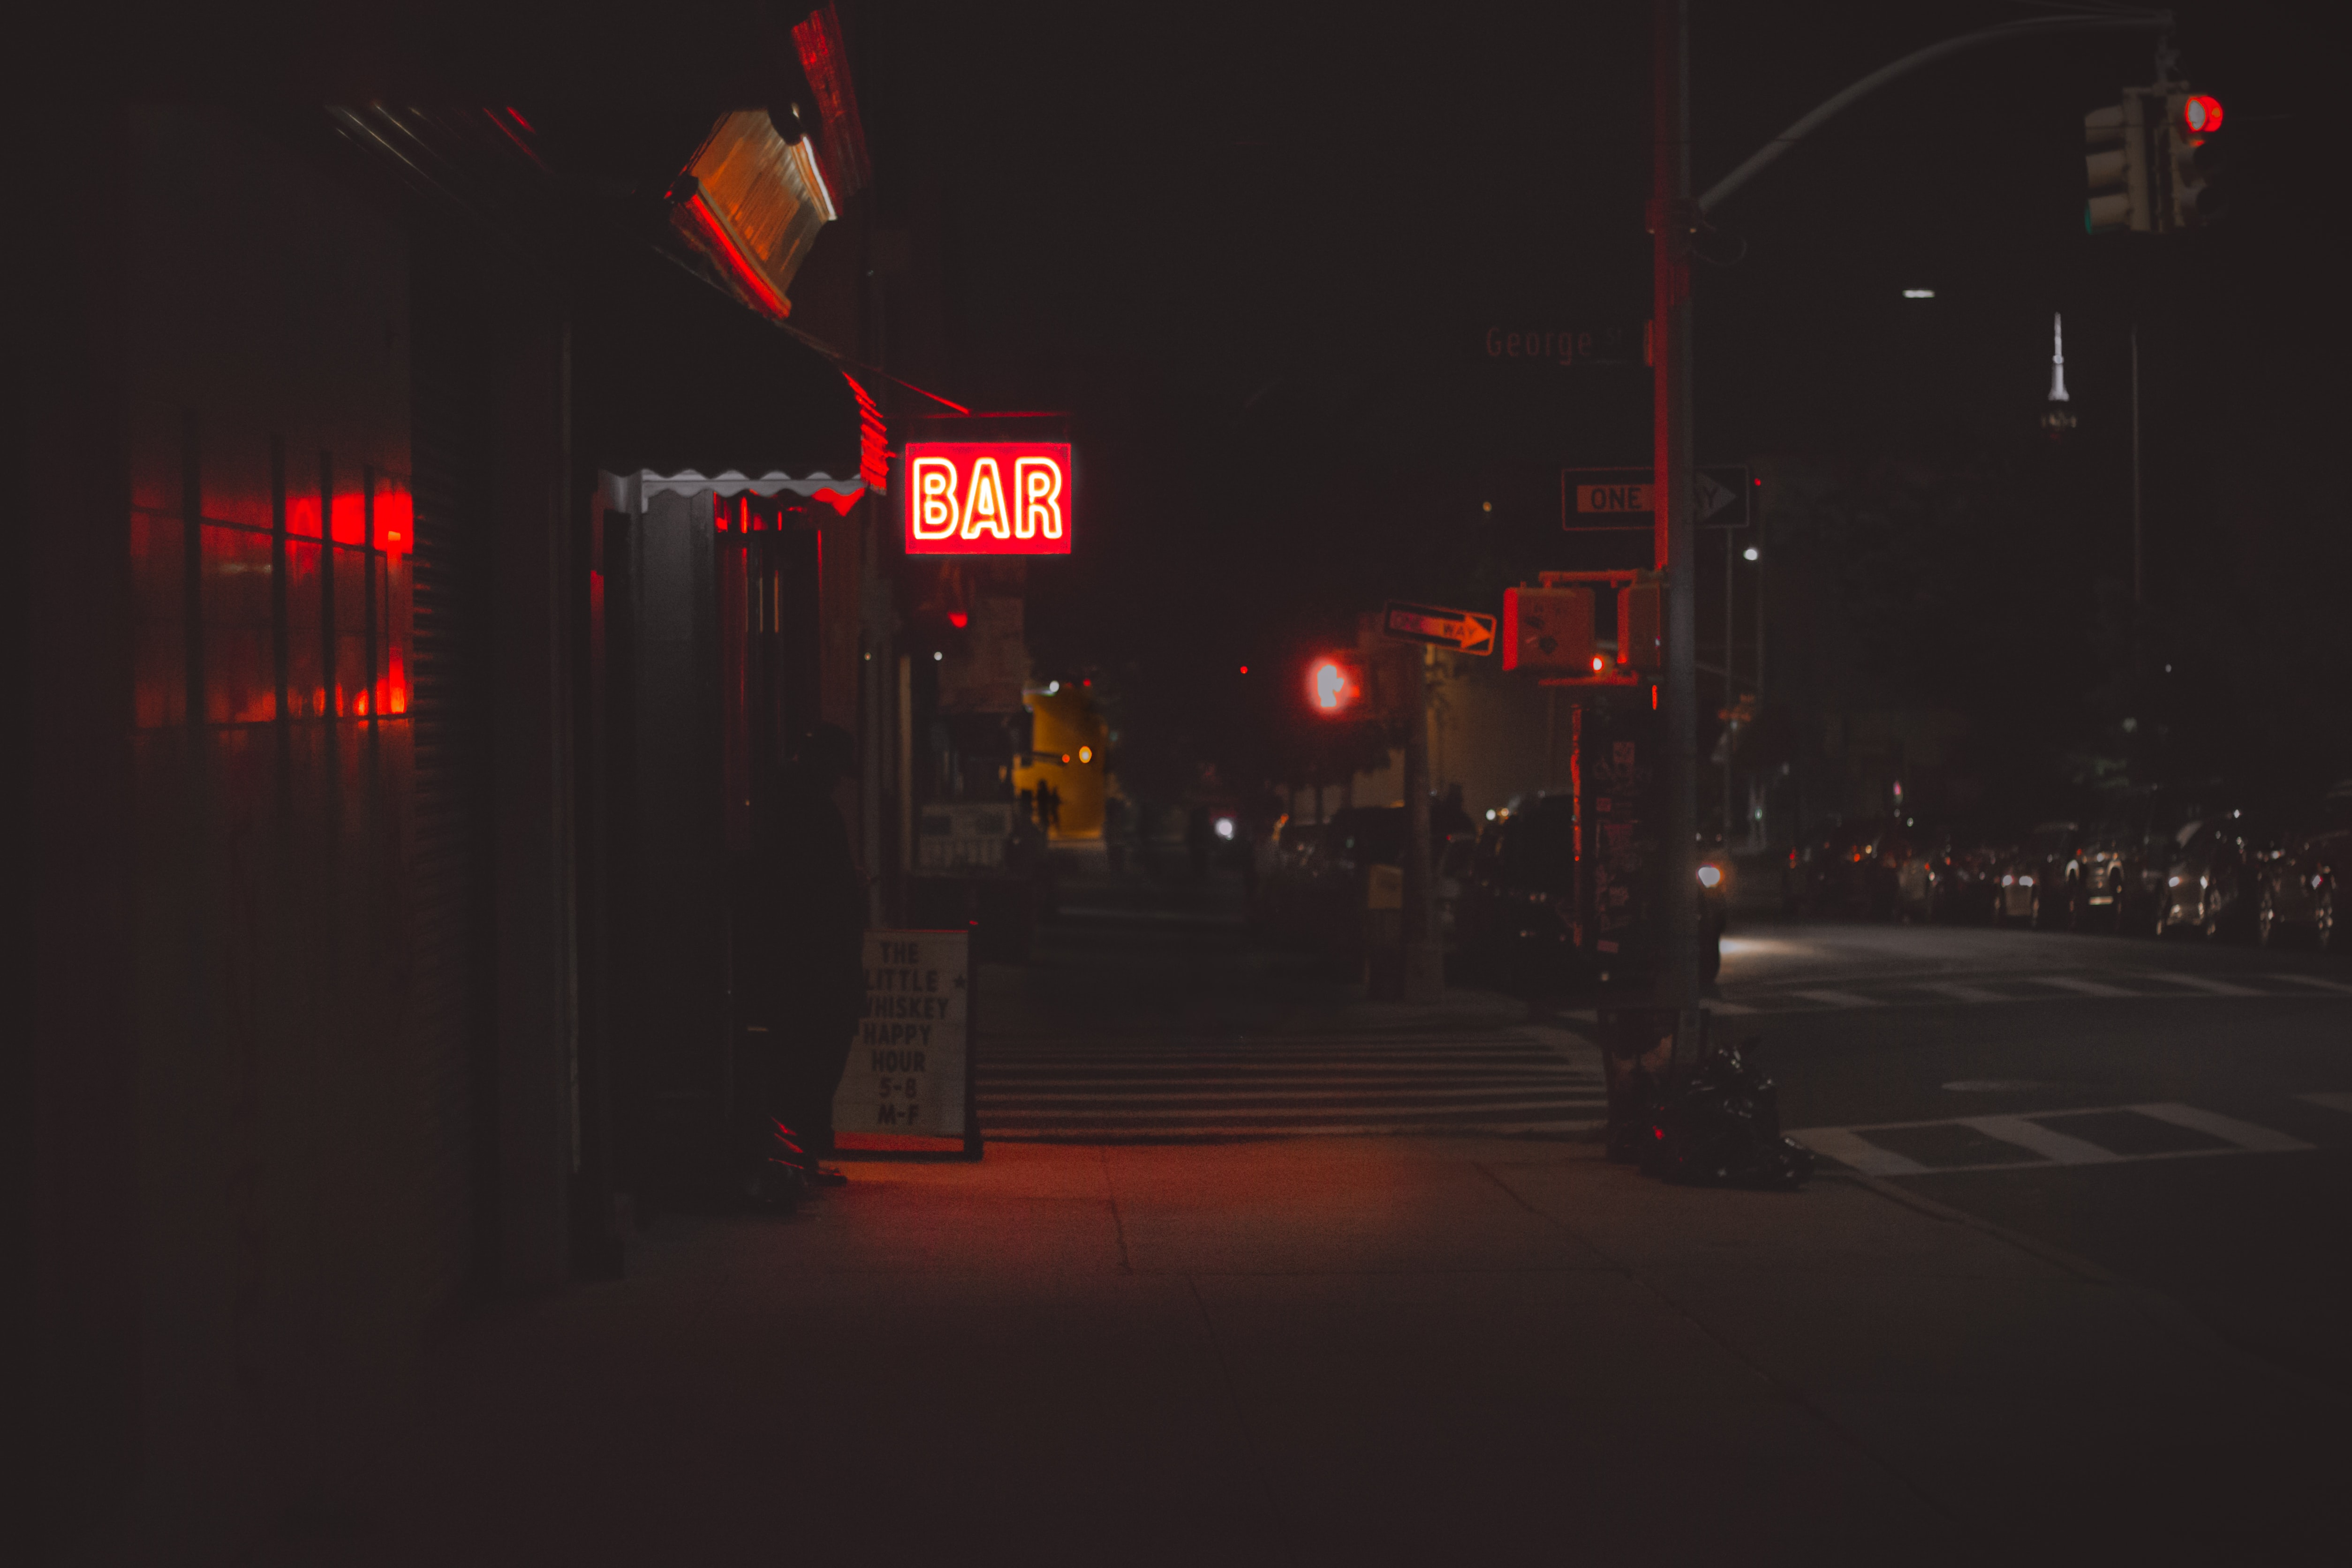 lighted bar signage during nighttime